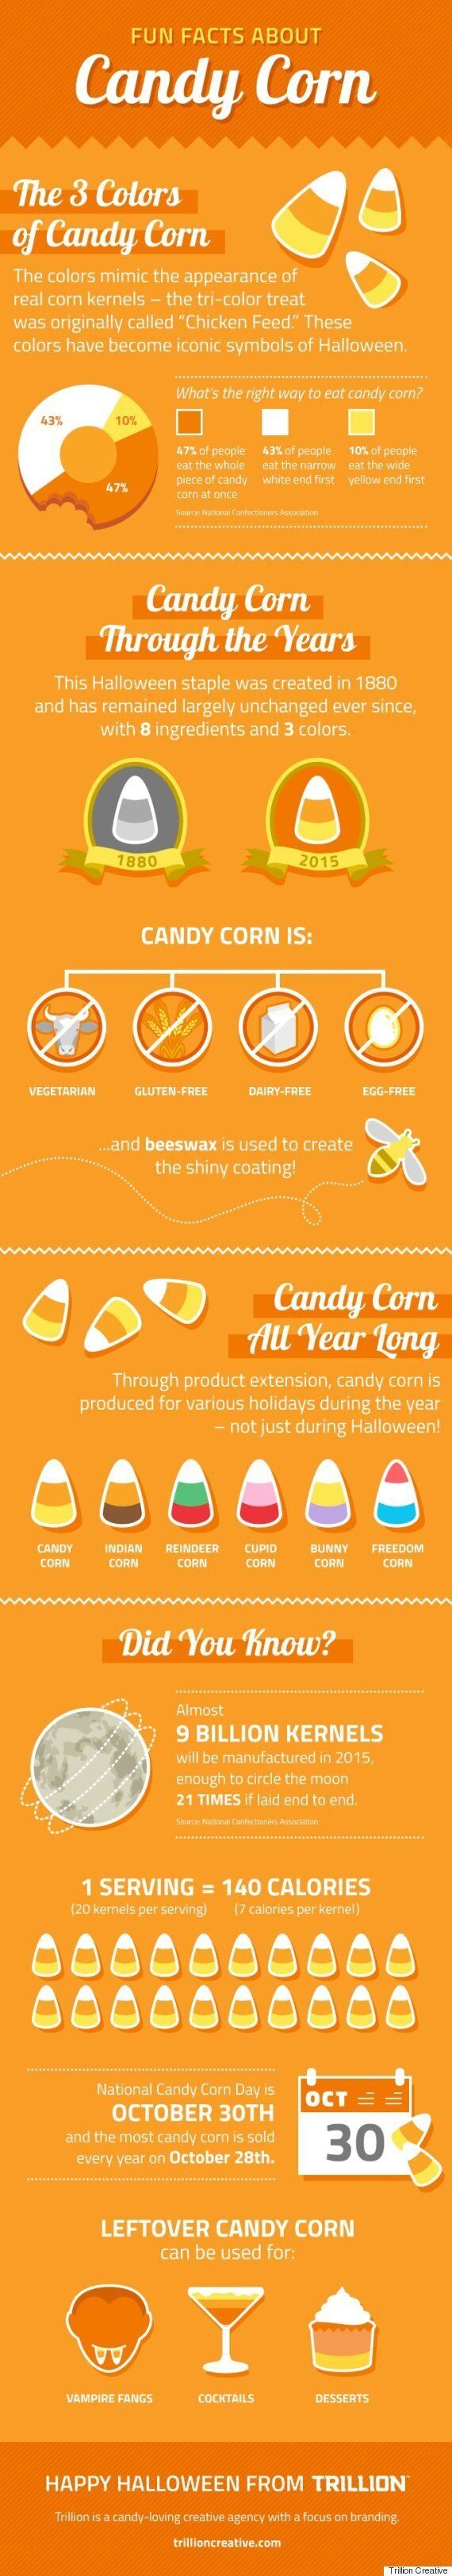 Fun Facts About Candy Corn -- Plus Tips For How To Use